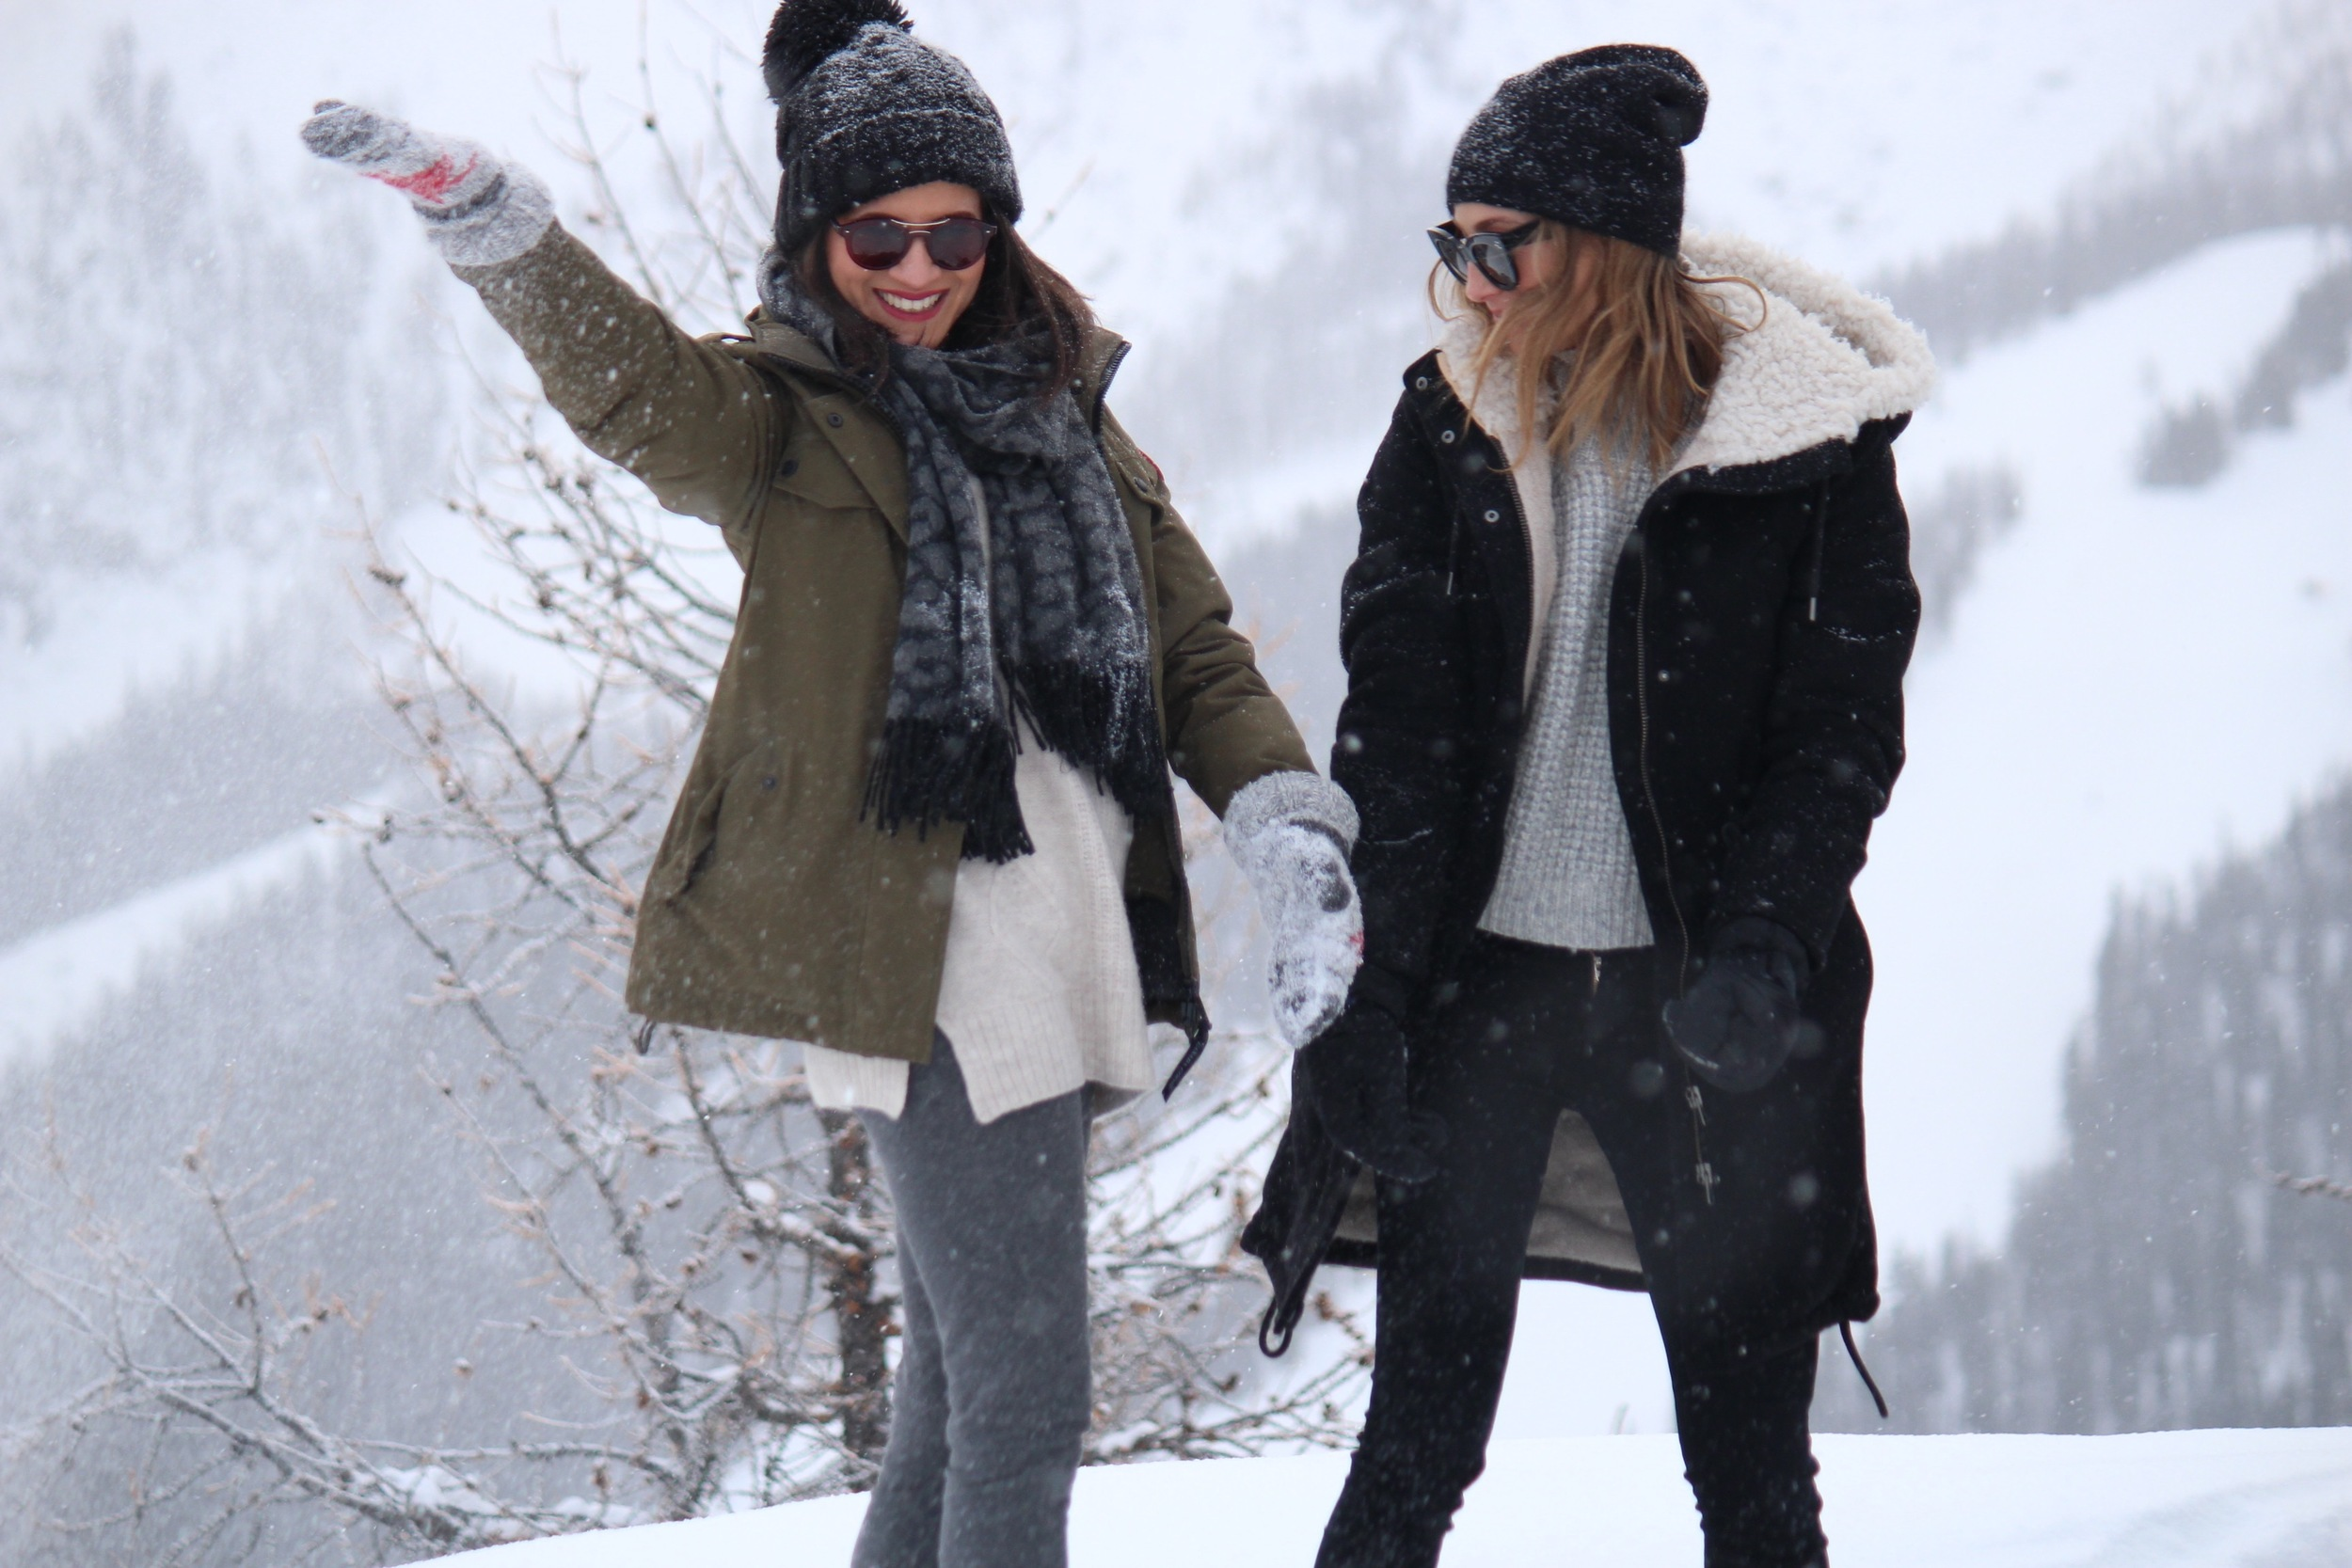 WoahStyle.com - Lake Louise Banff Fairmont-Roots Canada-Canada Goose-Travel Diary- OOTD- Toronto Blogger _Winter Style_9806.jpg